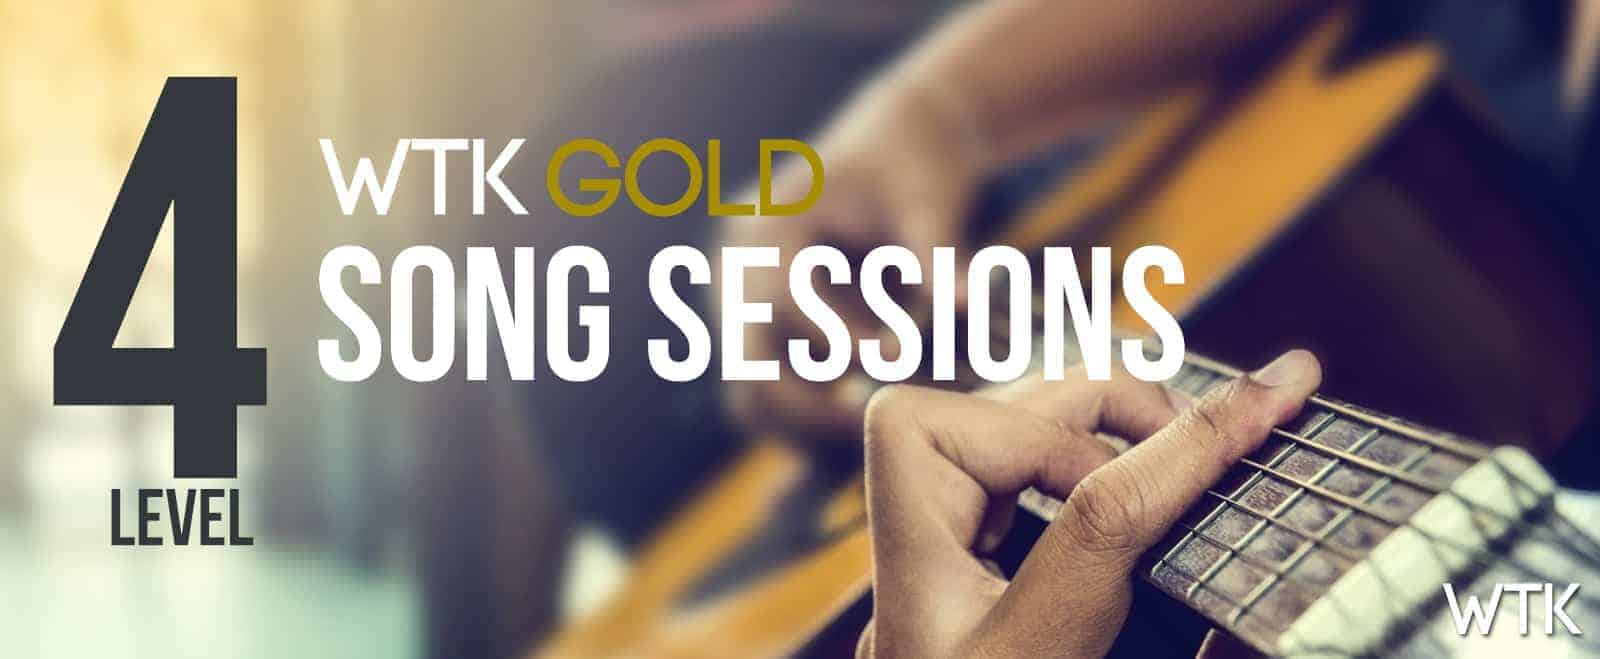 WTK GOLD Song Sessions Level 4